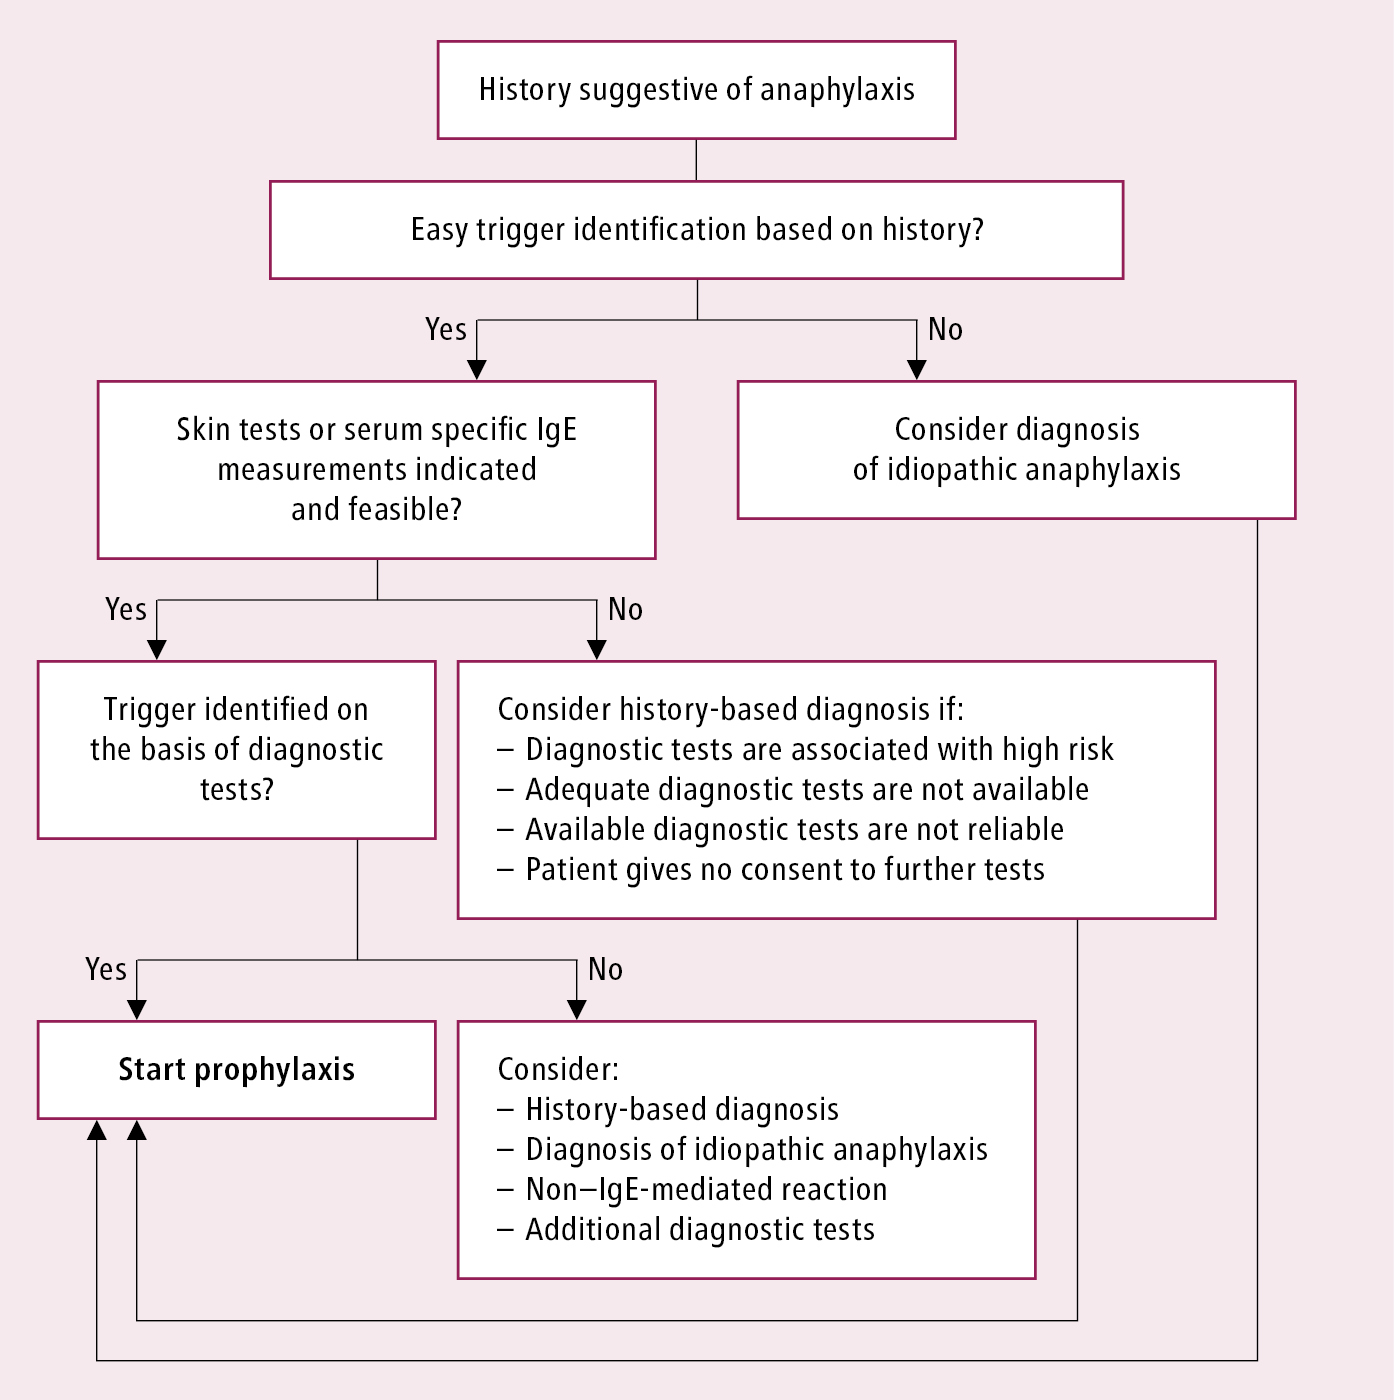 Figure 031_1_8799.  Algorithm of initial evaluation and management in patients with suspected anaphylaxis.  Adapted from    Ann Allergy Asthma Immunol. 2015;115(5):341-84   .